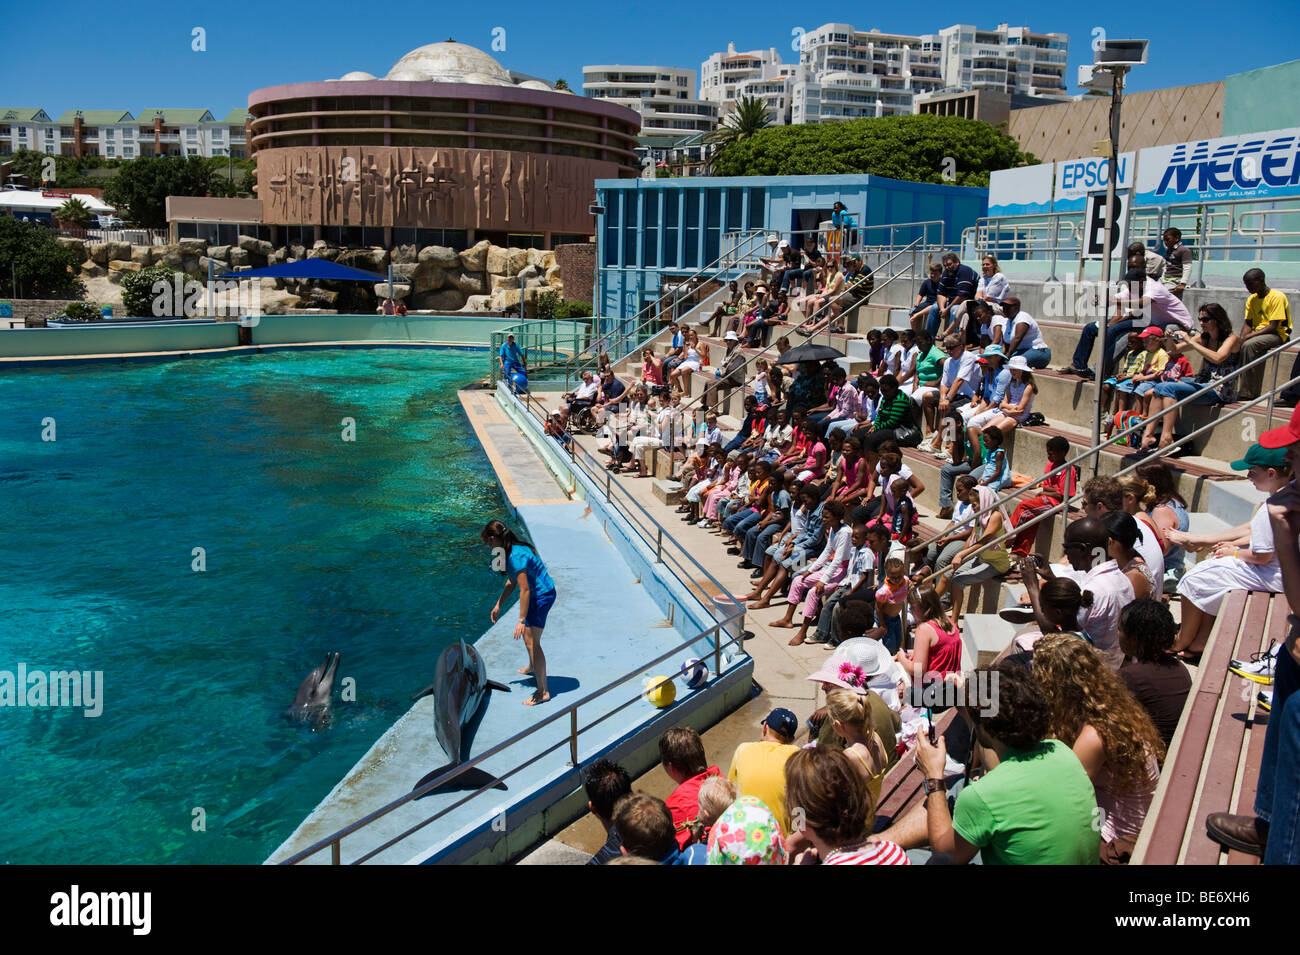 Dolphin show oceanarium bayworld port elizabeth south - What to do in port elizabeth south africa ...